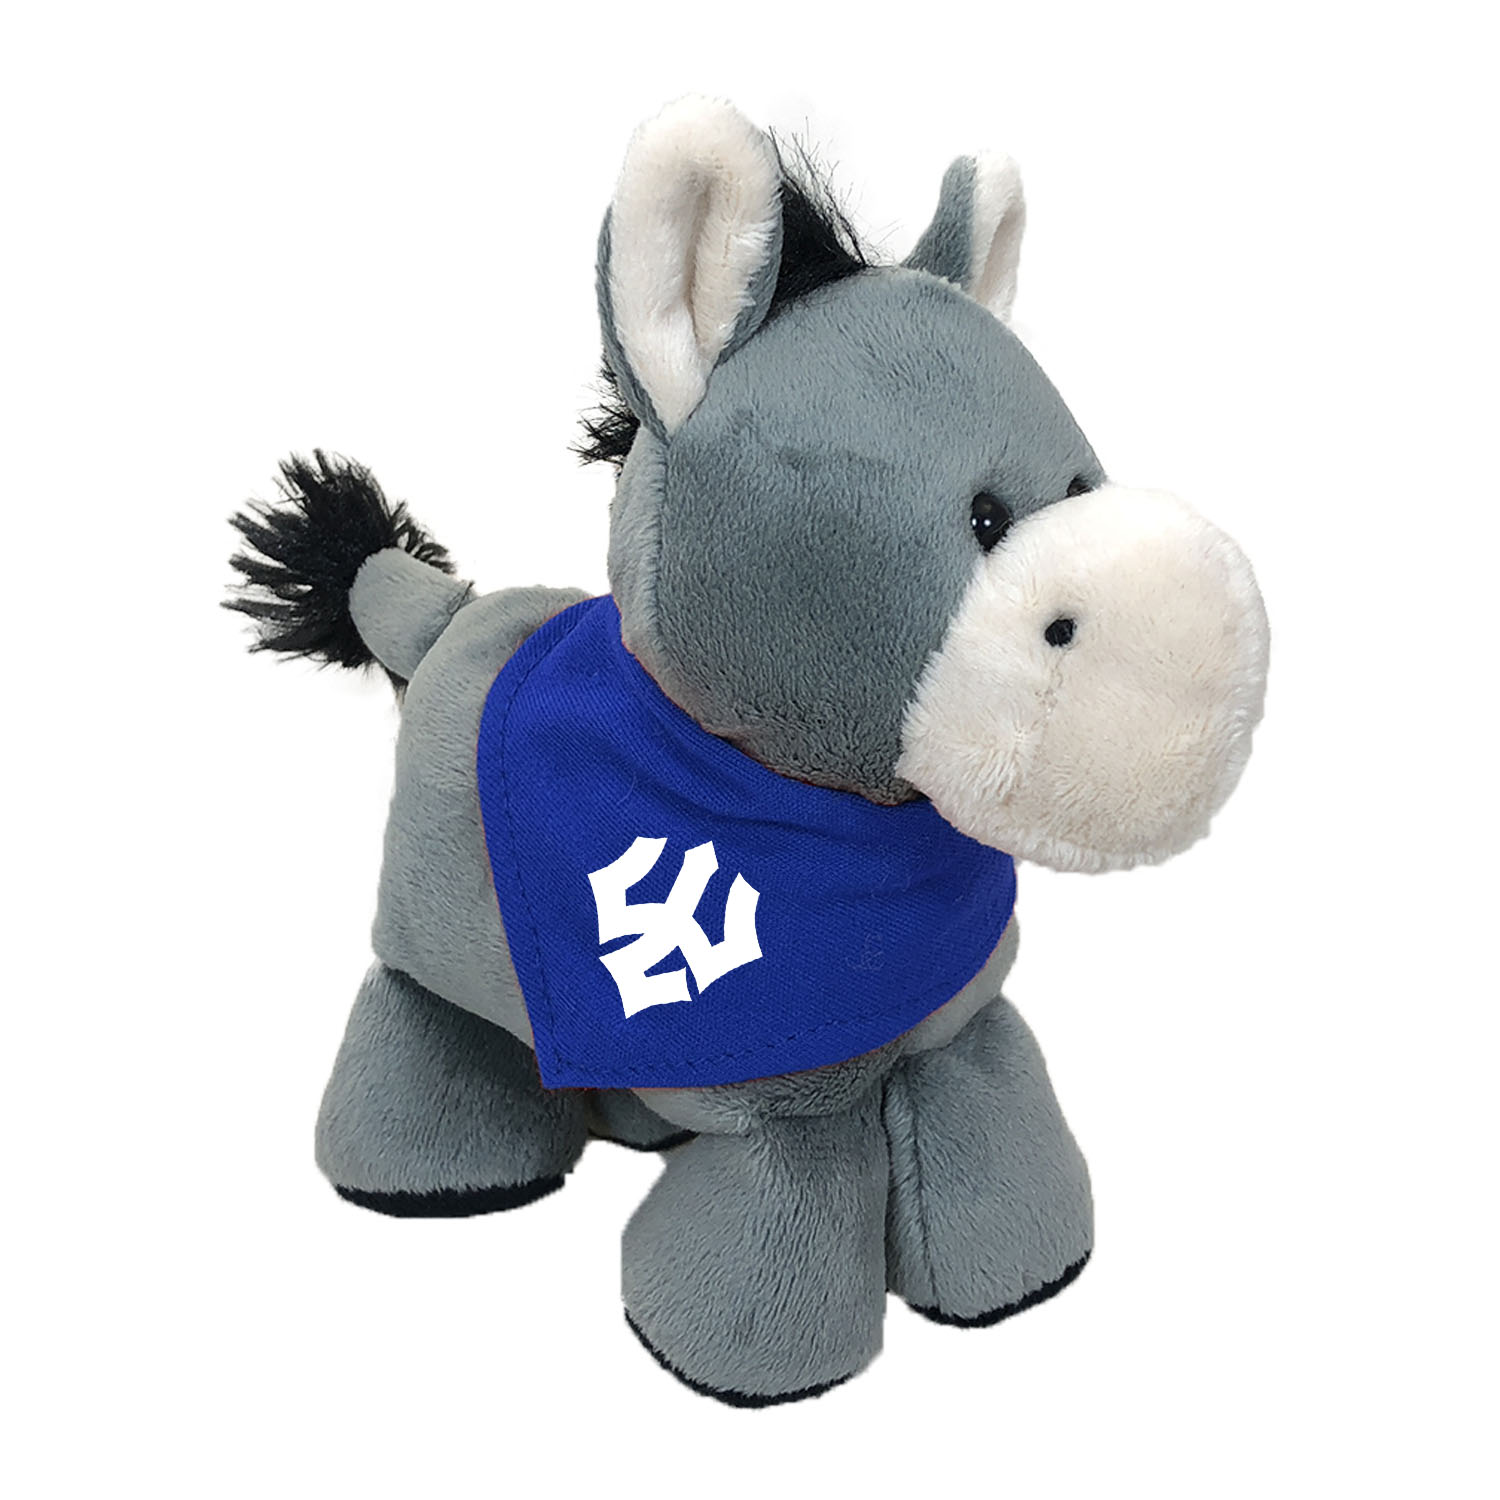 Donkey Short Stack Plush